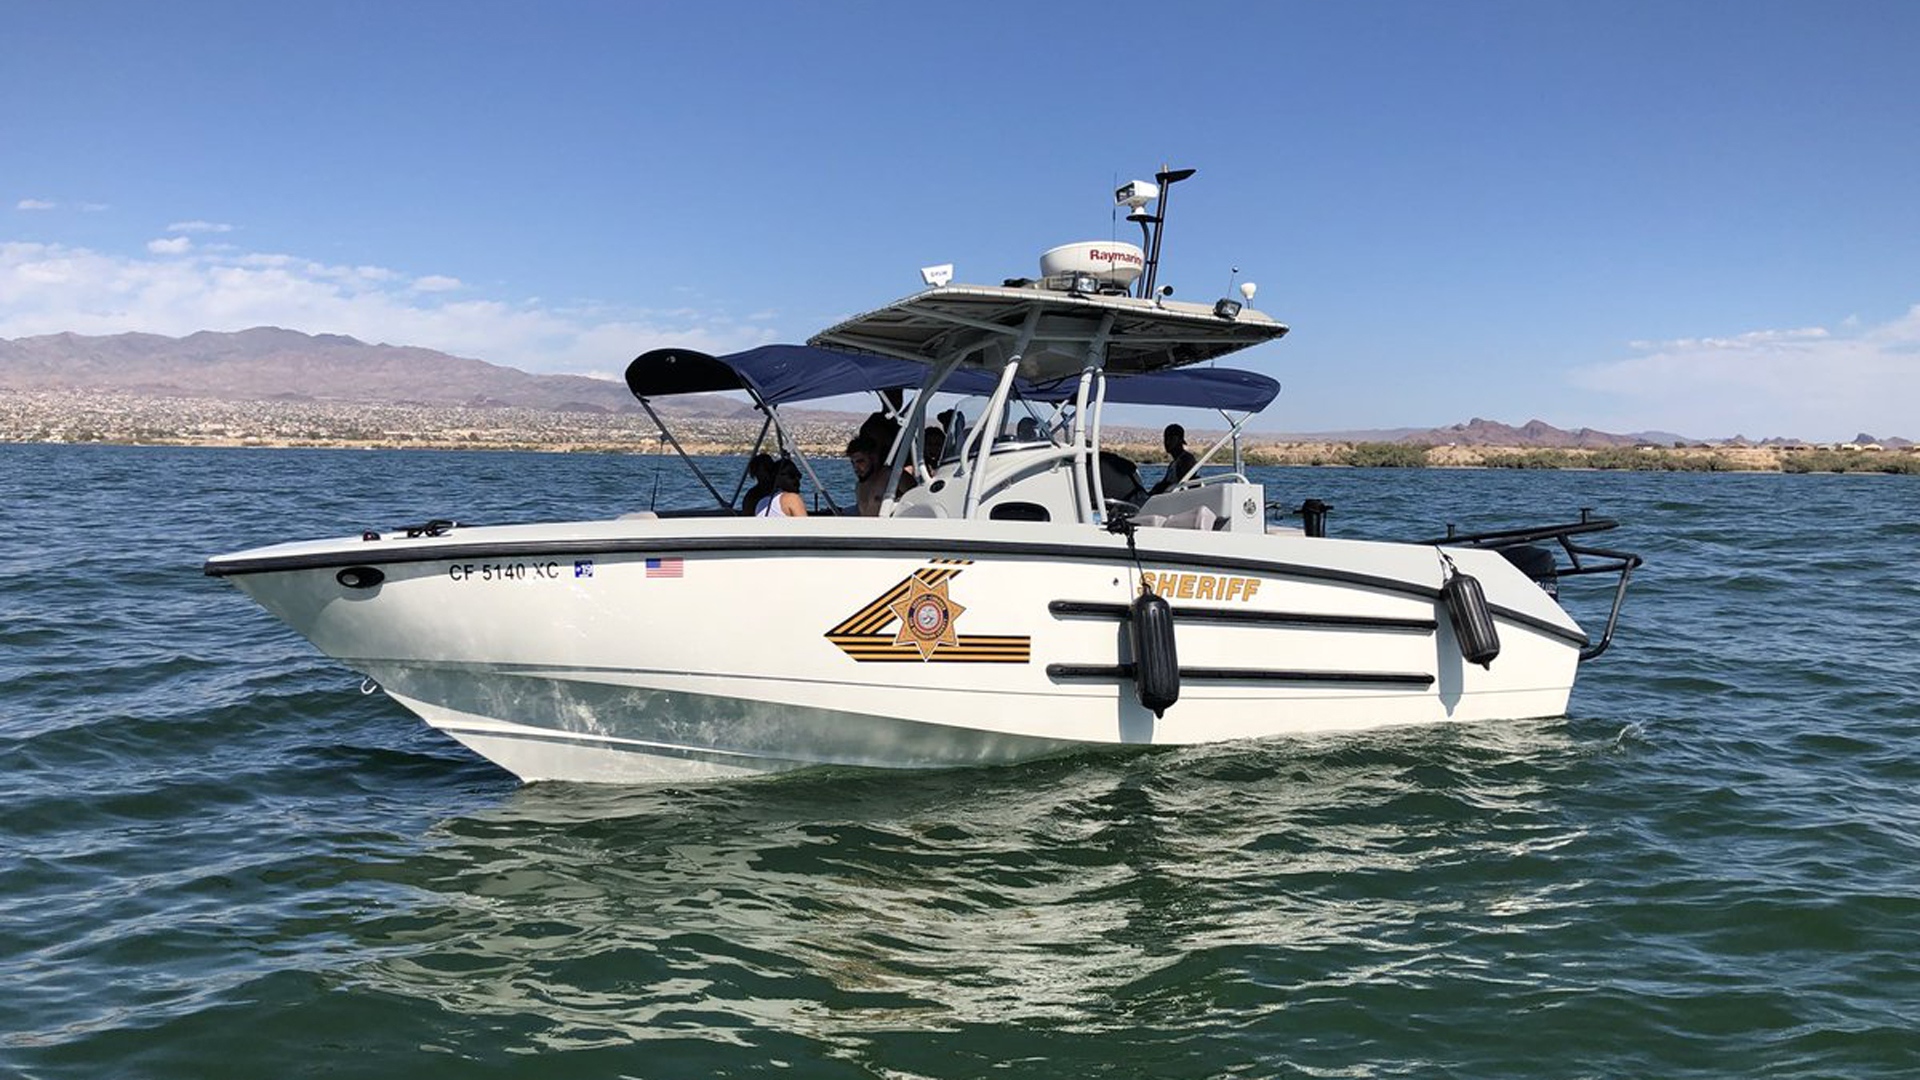 A San Bernardino County Marine Enforcement Unit -- this one out patrolling Lake Havasu on Sept. 1, 2018-- is seen in a photo released by the Sheriff's Department.